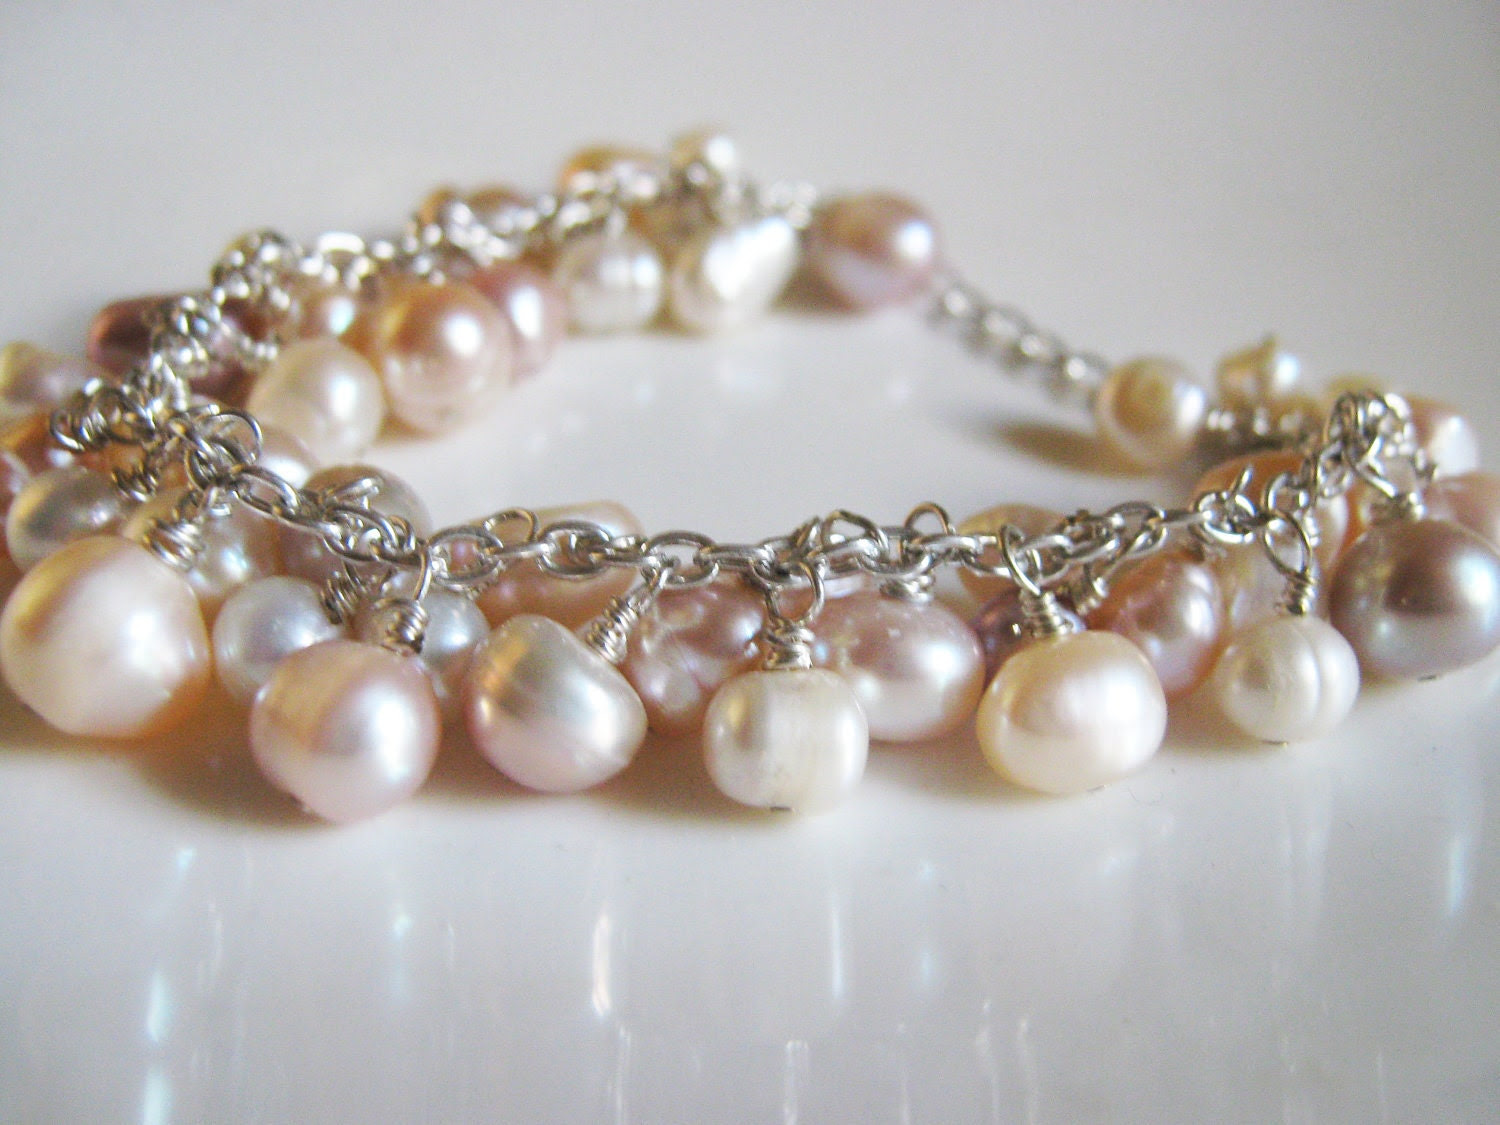 Freshwater Pearl Cluster Bracelet in Peach, white, cream, and mauve